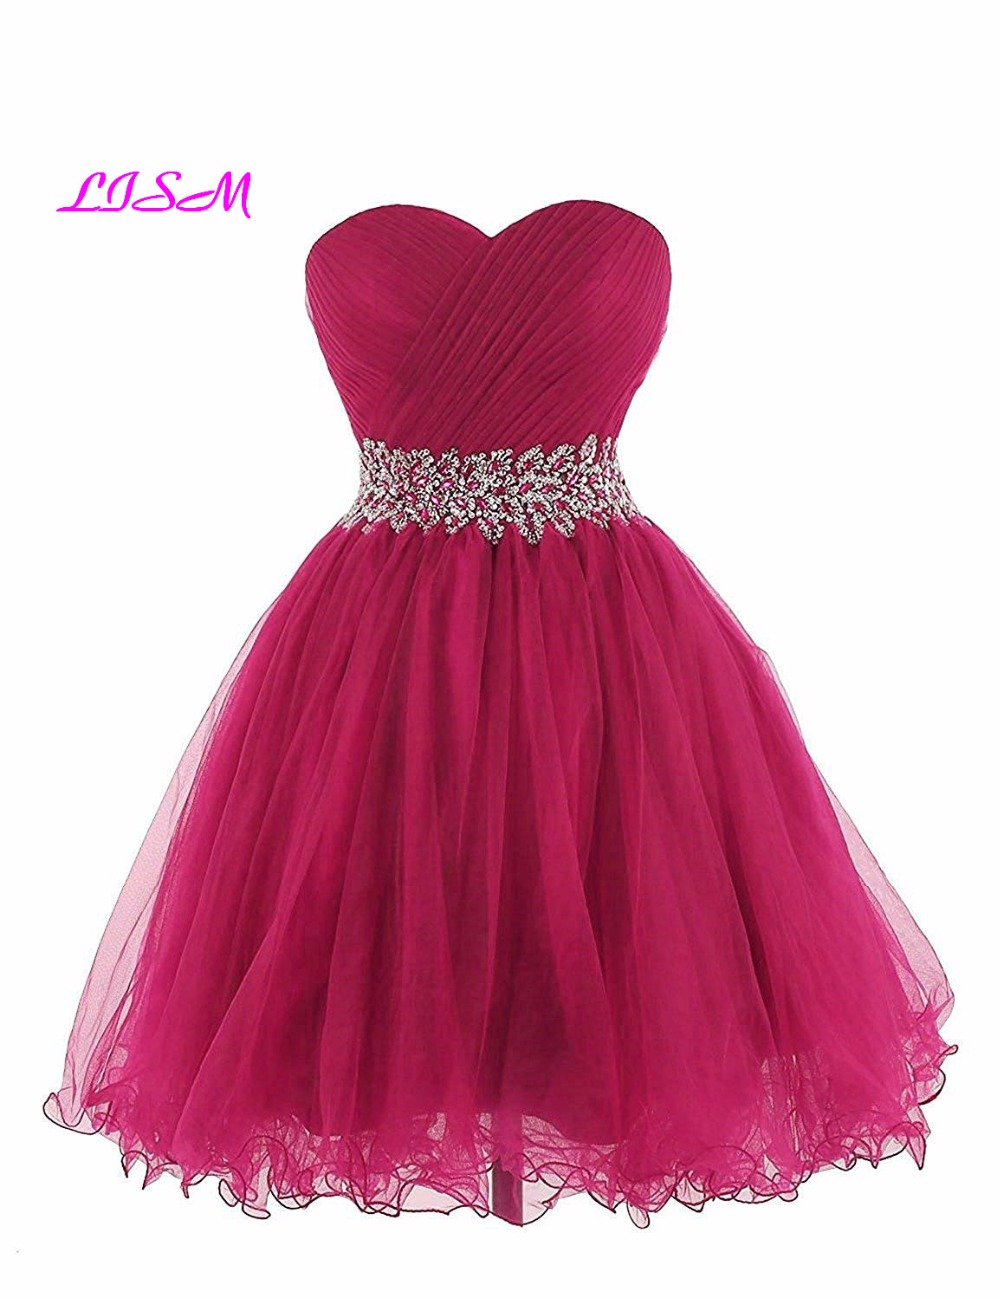 LISM 2018 New Arrival Sweetheart A Line Short Homecoming Party Gowns Ruffled Crystals Mini Cocktail Dresses